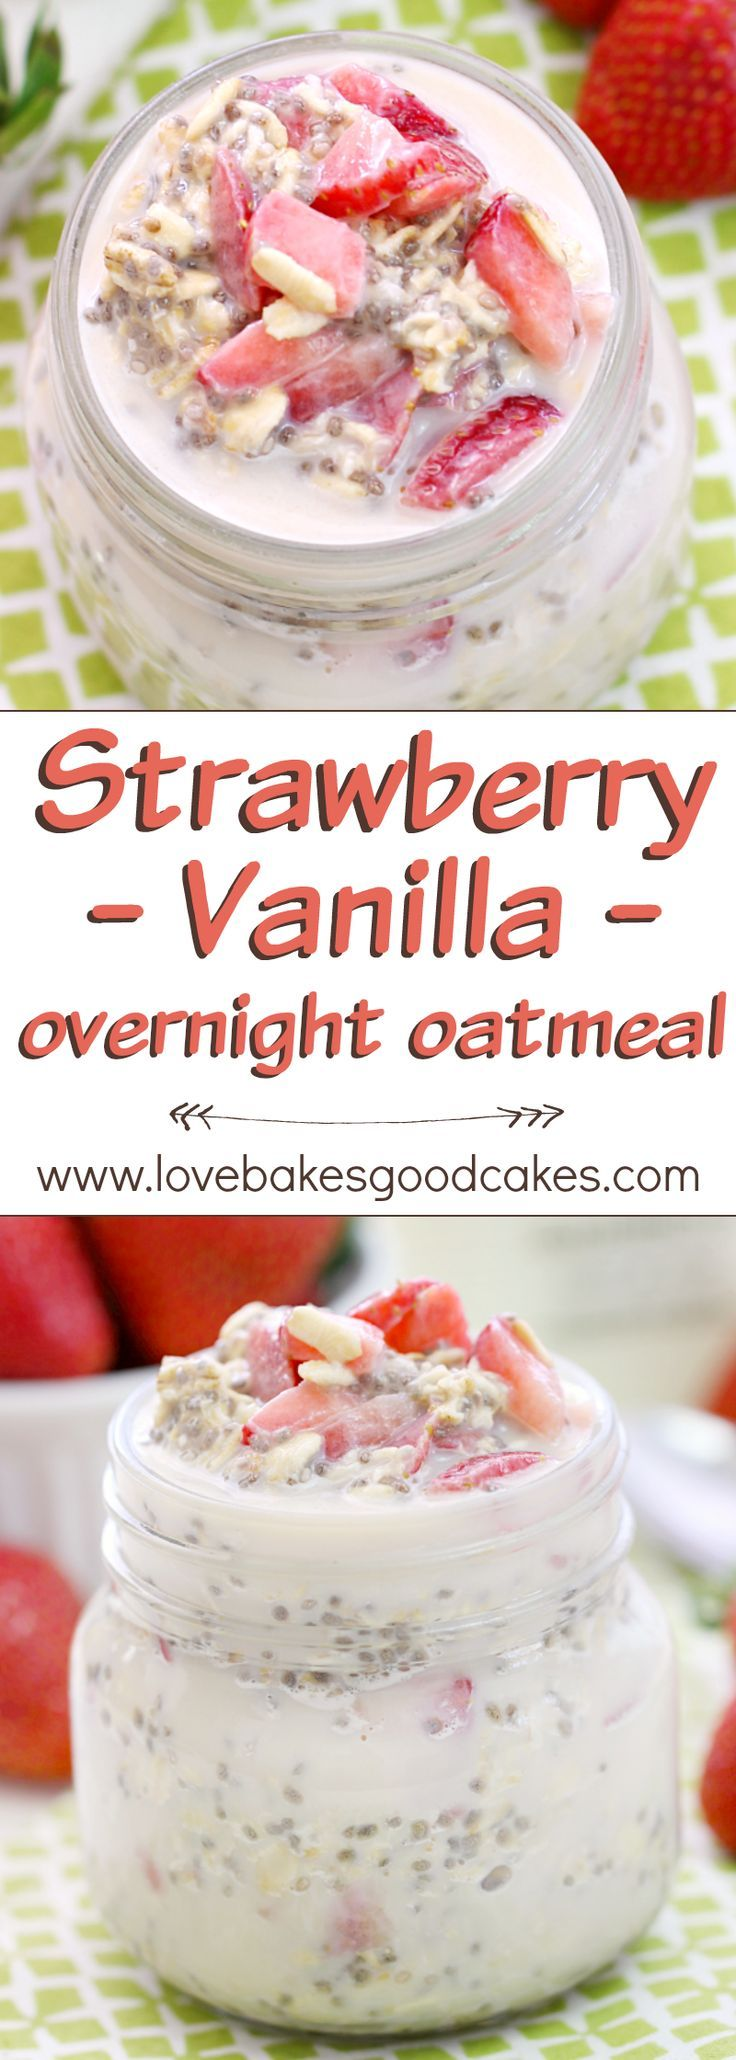 """Fuel up"" like Team USA with this Strawberry Vanilla Overnight Oatmeal recipe. It's a great way to start your day with a delicious and healthy breakfast! AD"